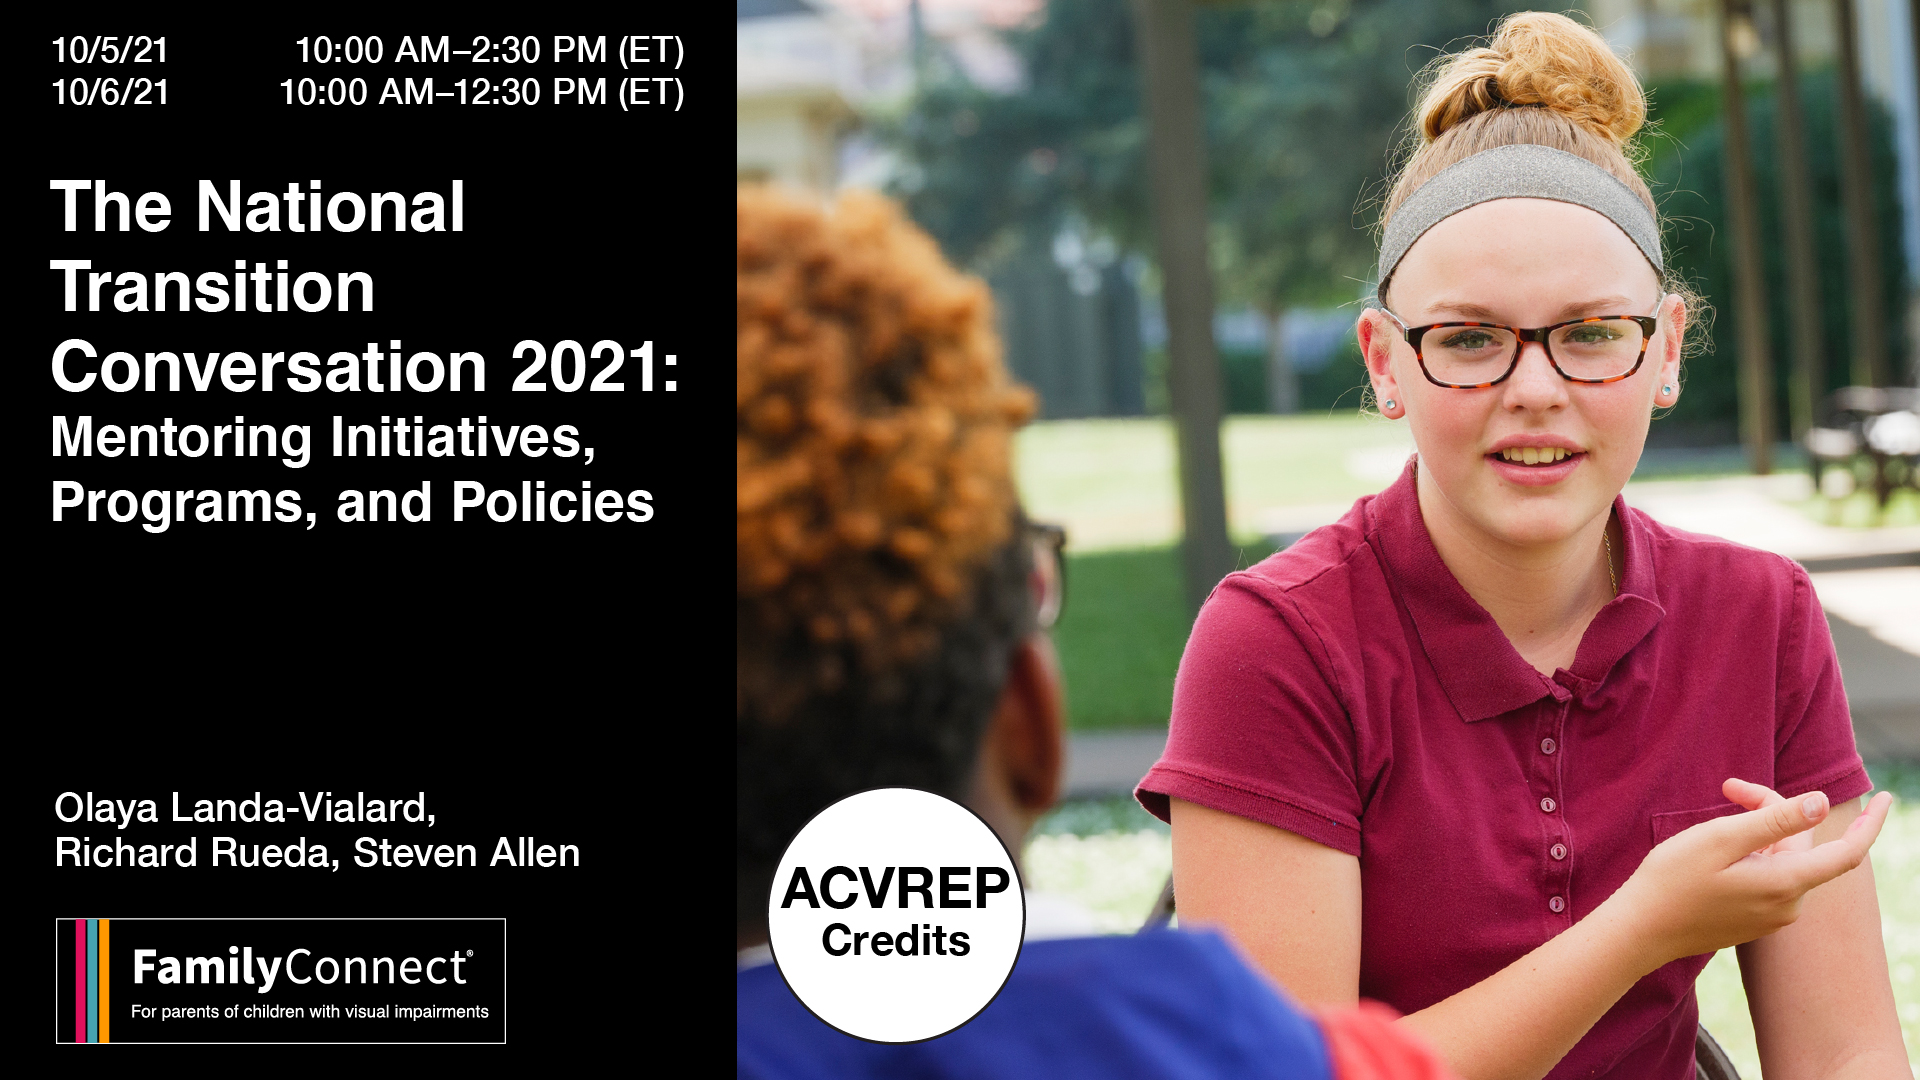 The National Transition Conversation 2021: Mentoring Initiatives, Programs and Policies